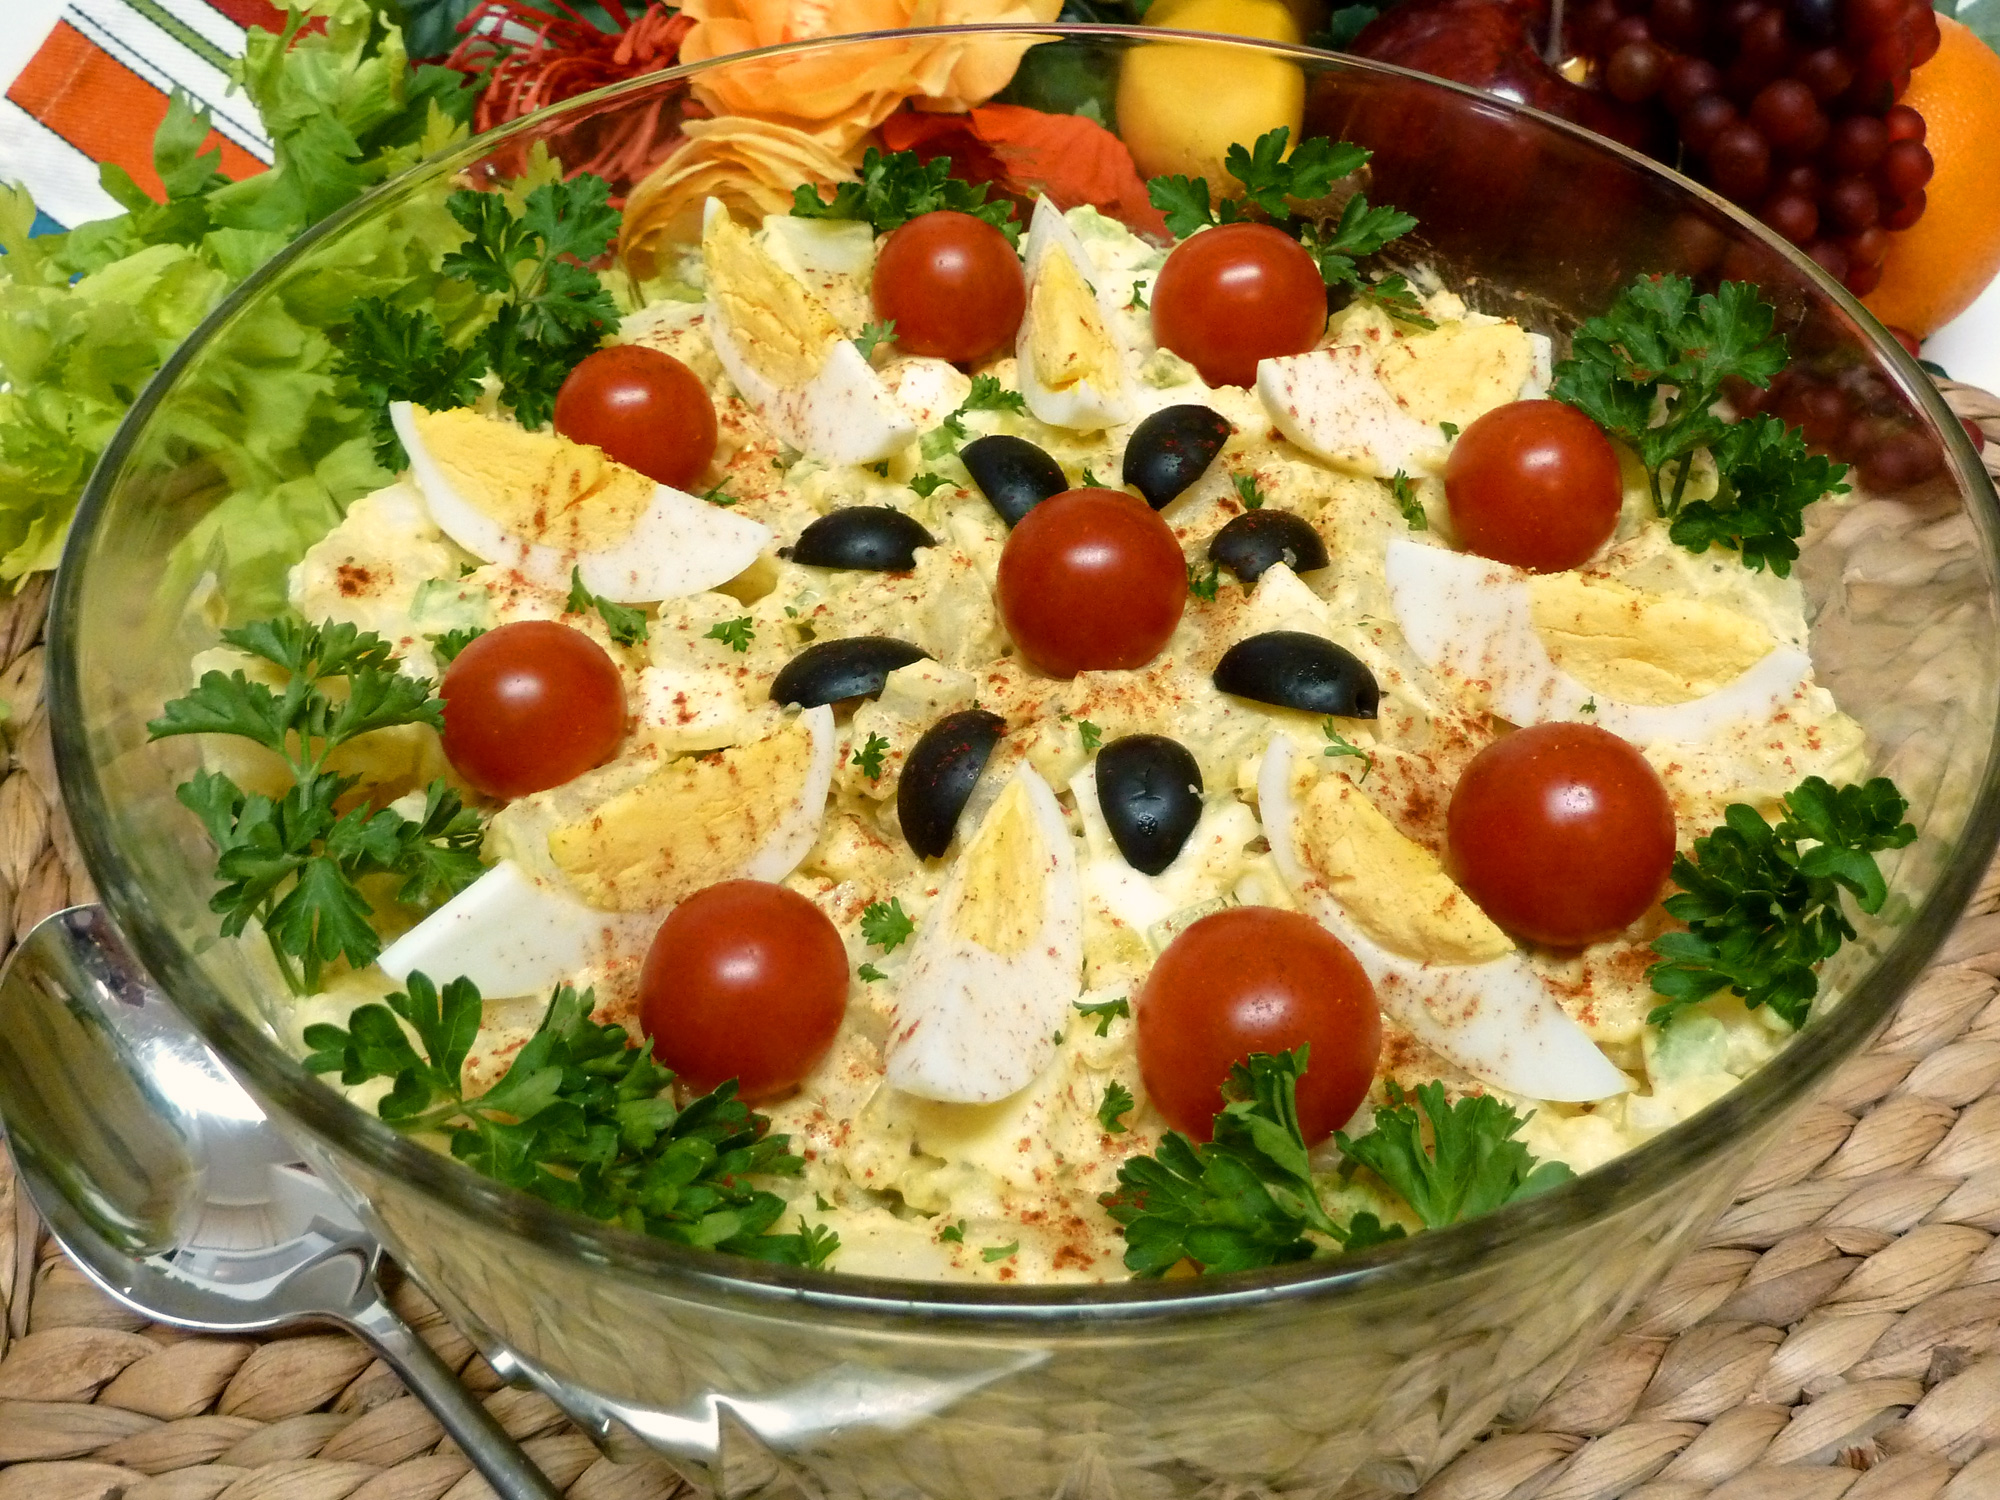 Feast your eyes on this decorated bowl of scrumptious mustard potato salad.